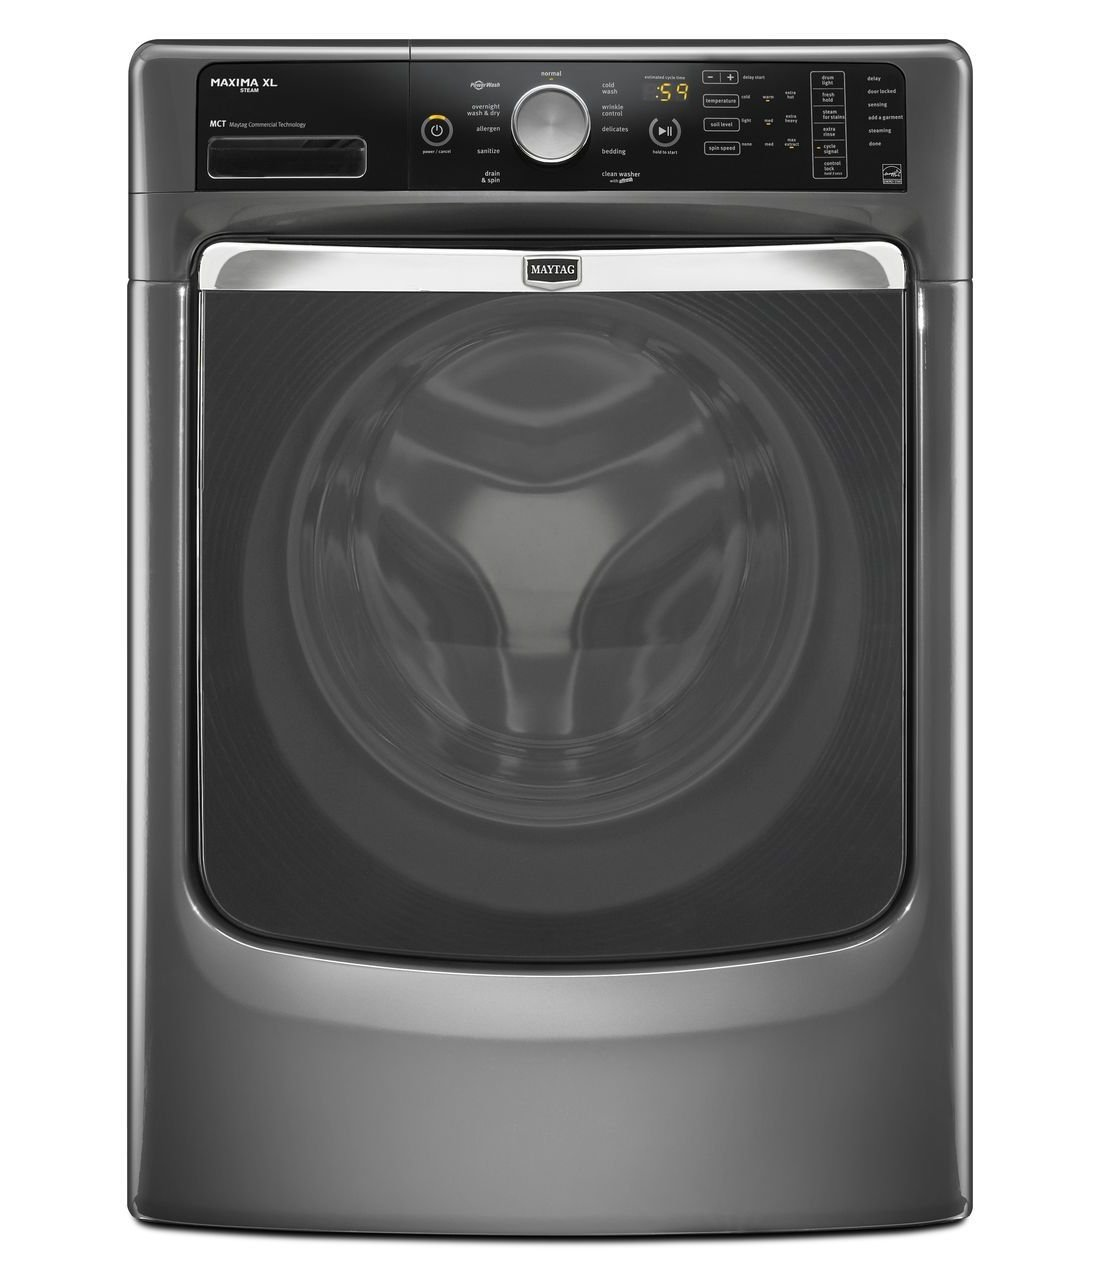 amazoncom maytag maxima xl front load steam washer and steam dryer set electric dryer with pedestals appliances